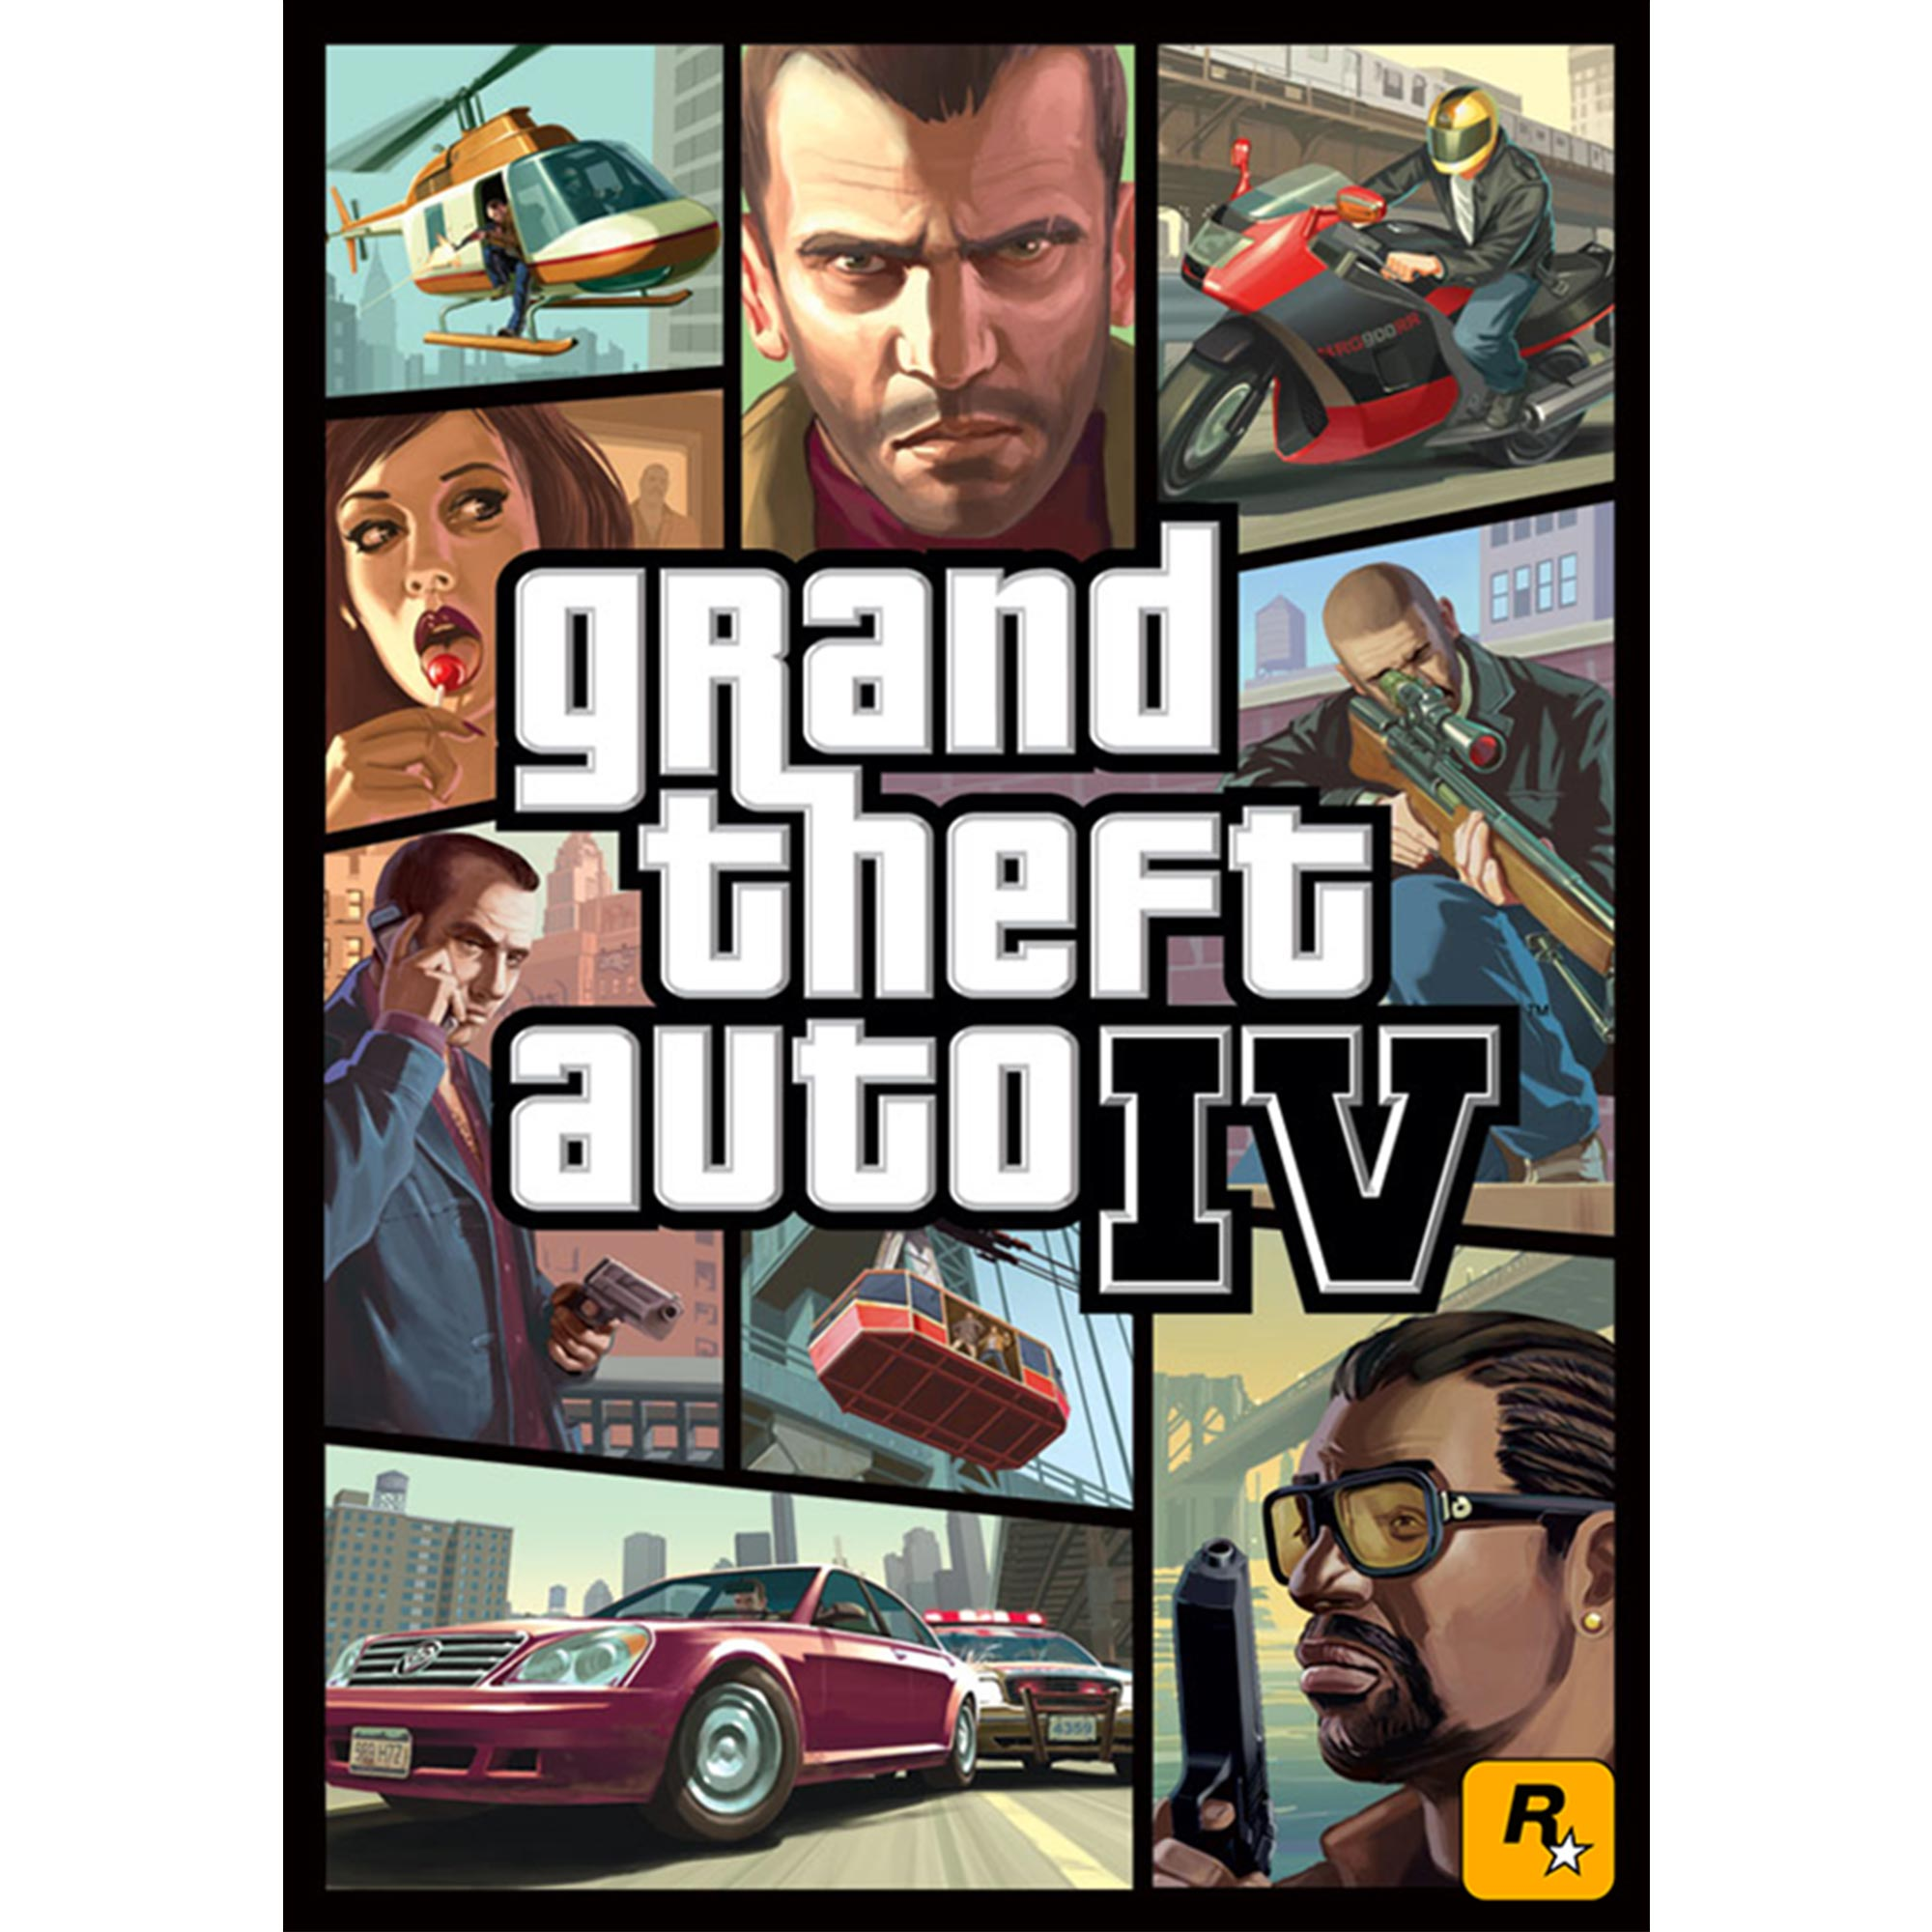 Grand Theft Auto IV (PC)(Digital Download)